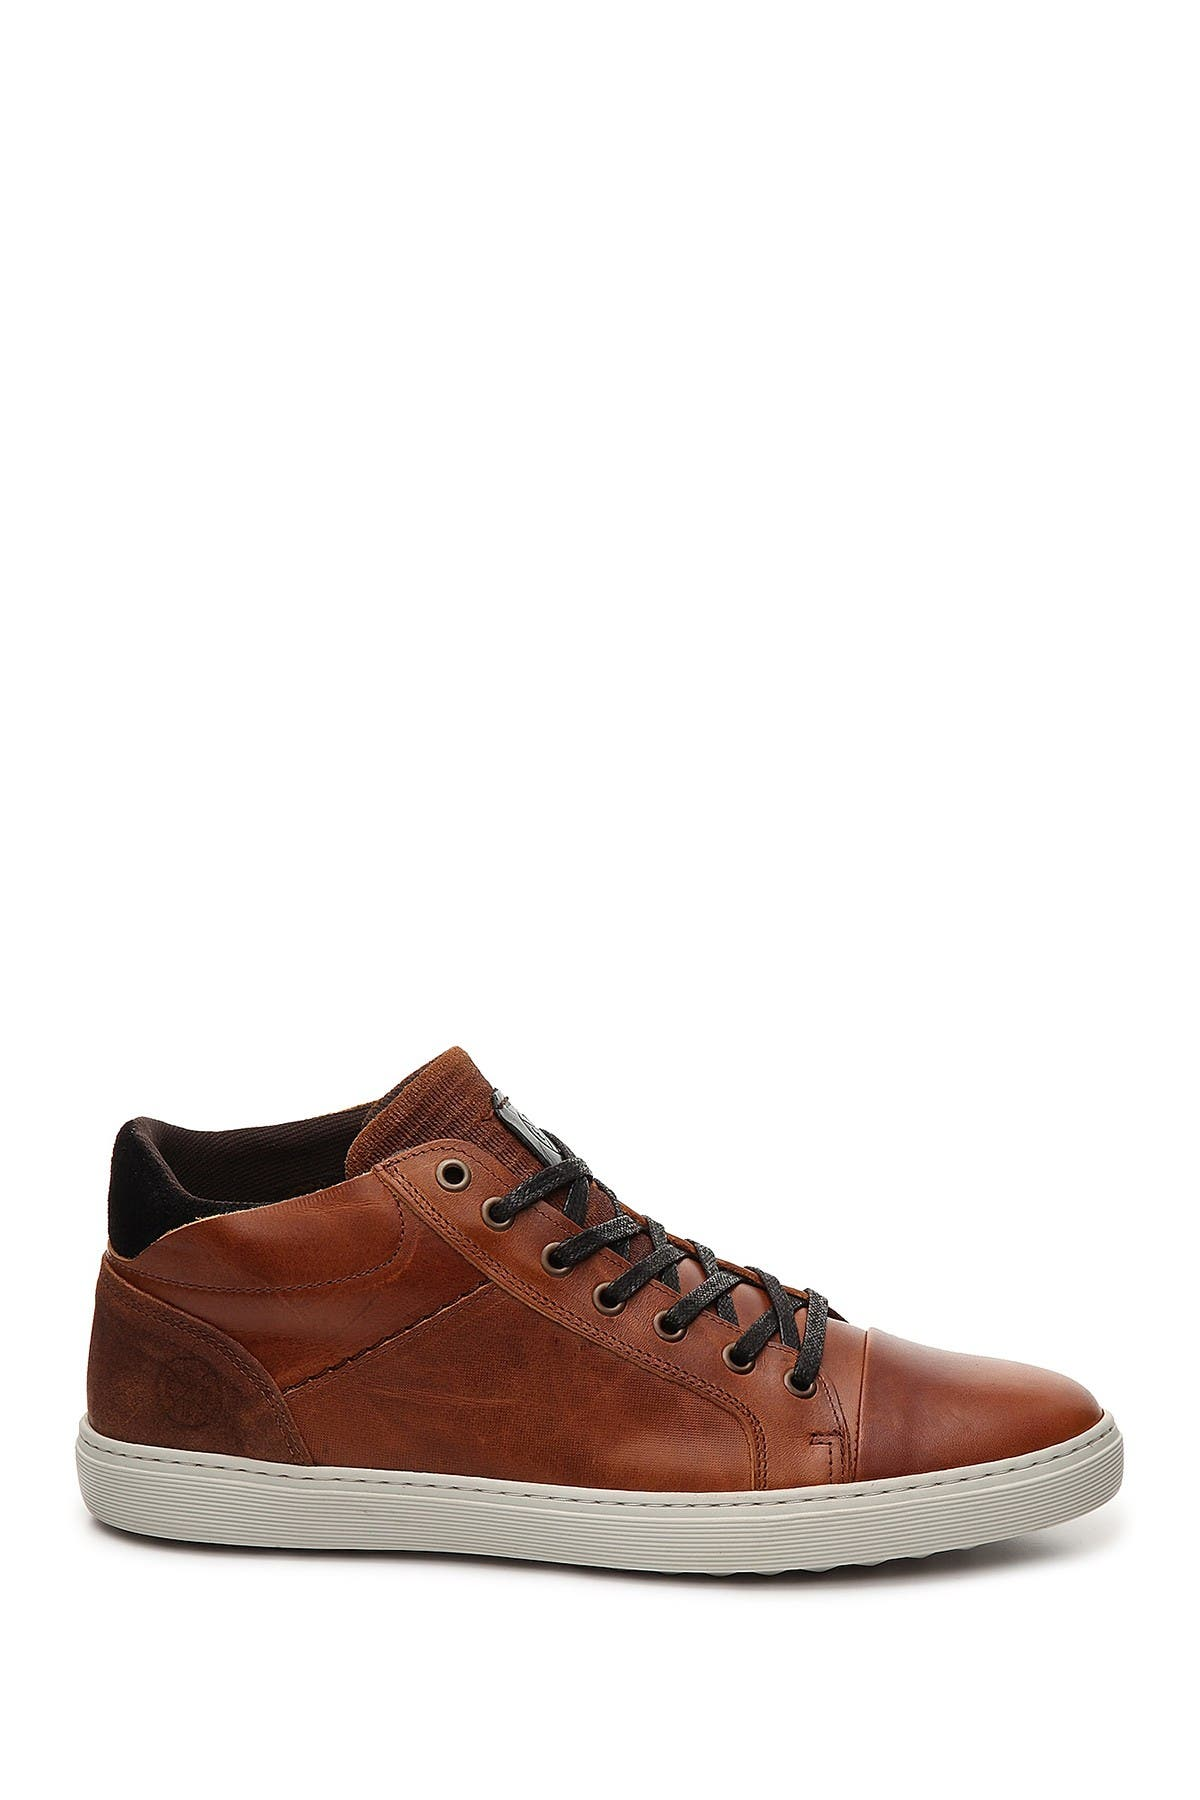 Image of Bullboxer Leather Mid Sneaker